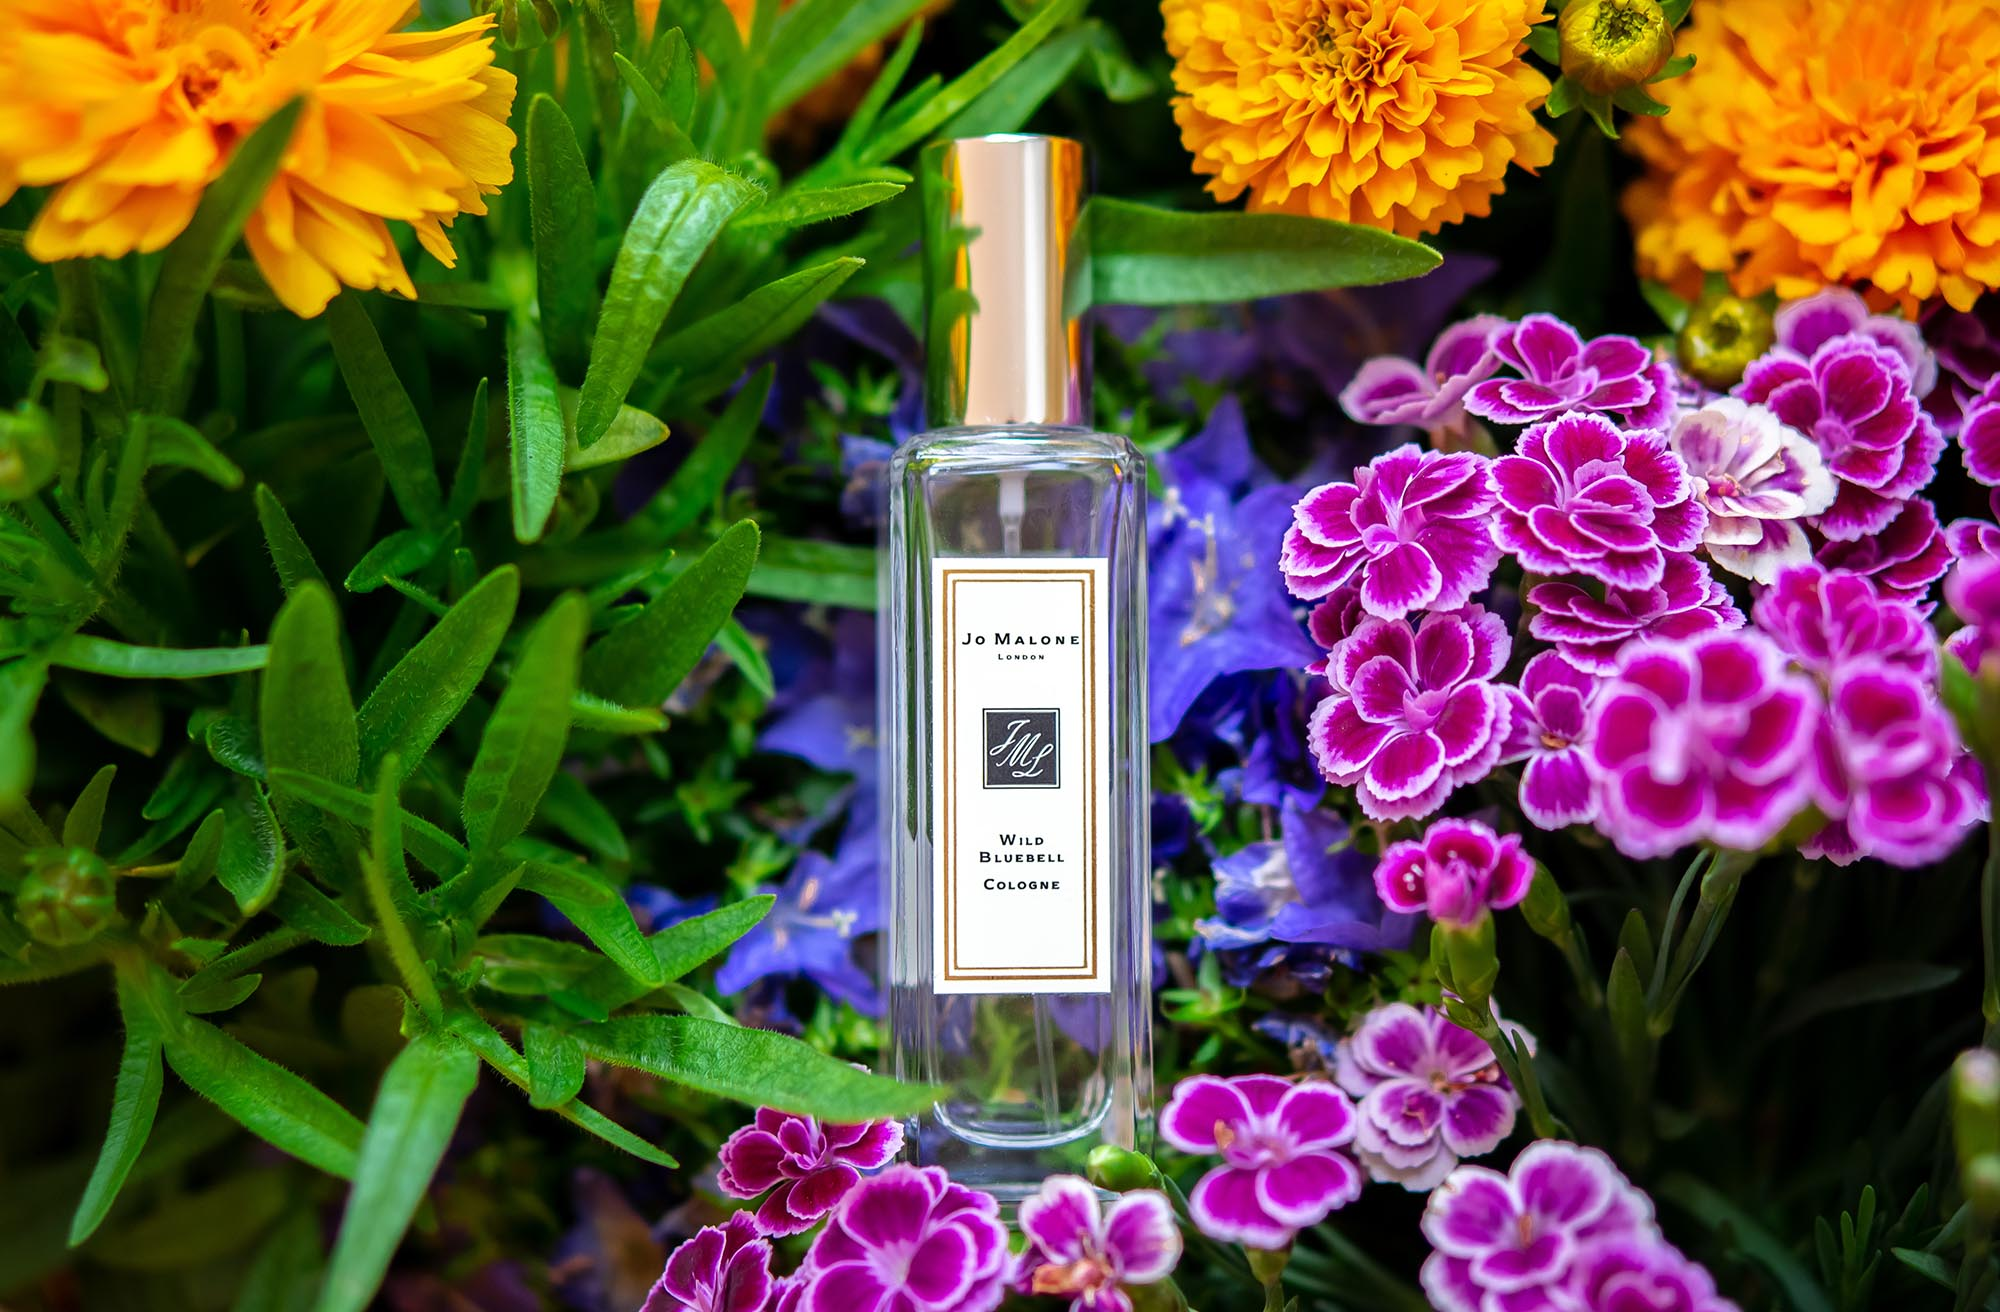 Jo Malone London Wild Bluebell Cologne perfume niche fragrance Parfüm Duft парфюм